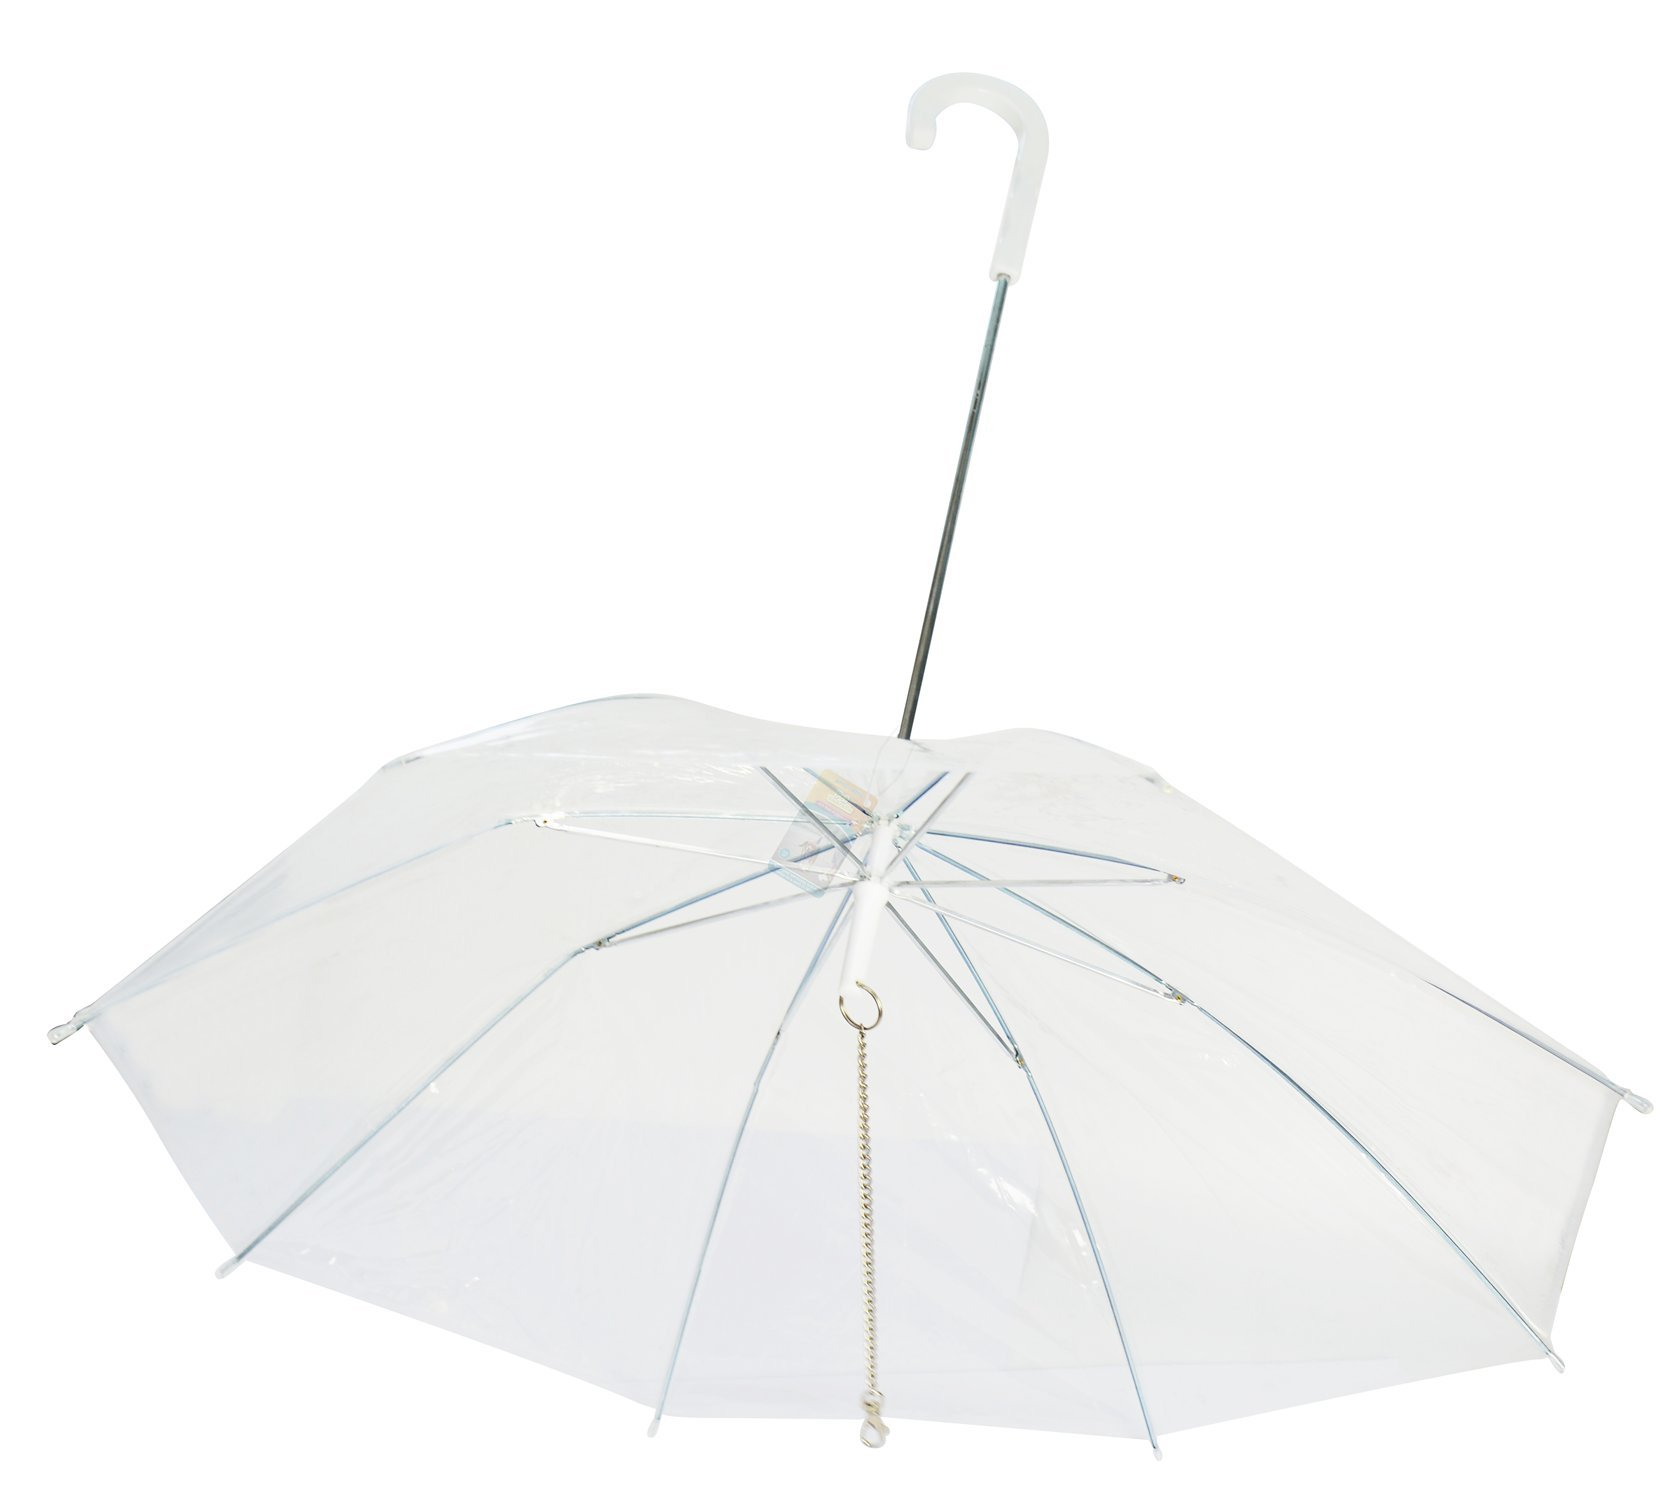 Perfect Life Ideas Pet Dog Umbrella with Leash - Easy View Clear Transparent Folding Puppy Umbrella for Small Dogs Puppies 20 Inches Back Length - Provides Protection from Rain Snow Wet Weather by Perfect Life Ideas